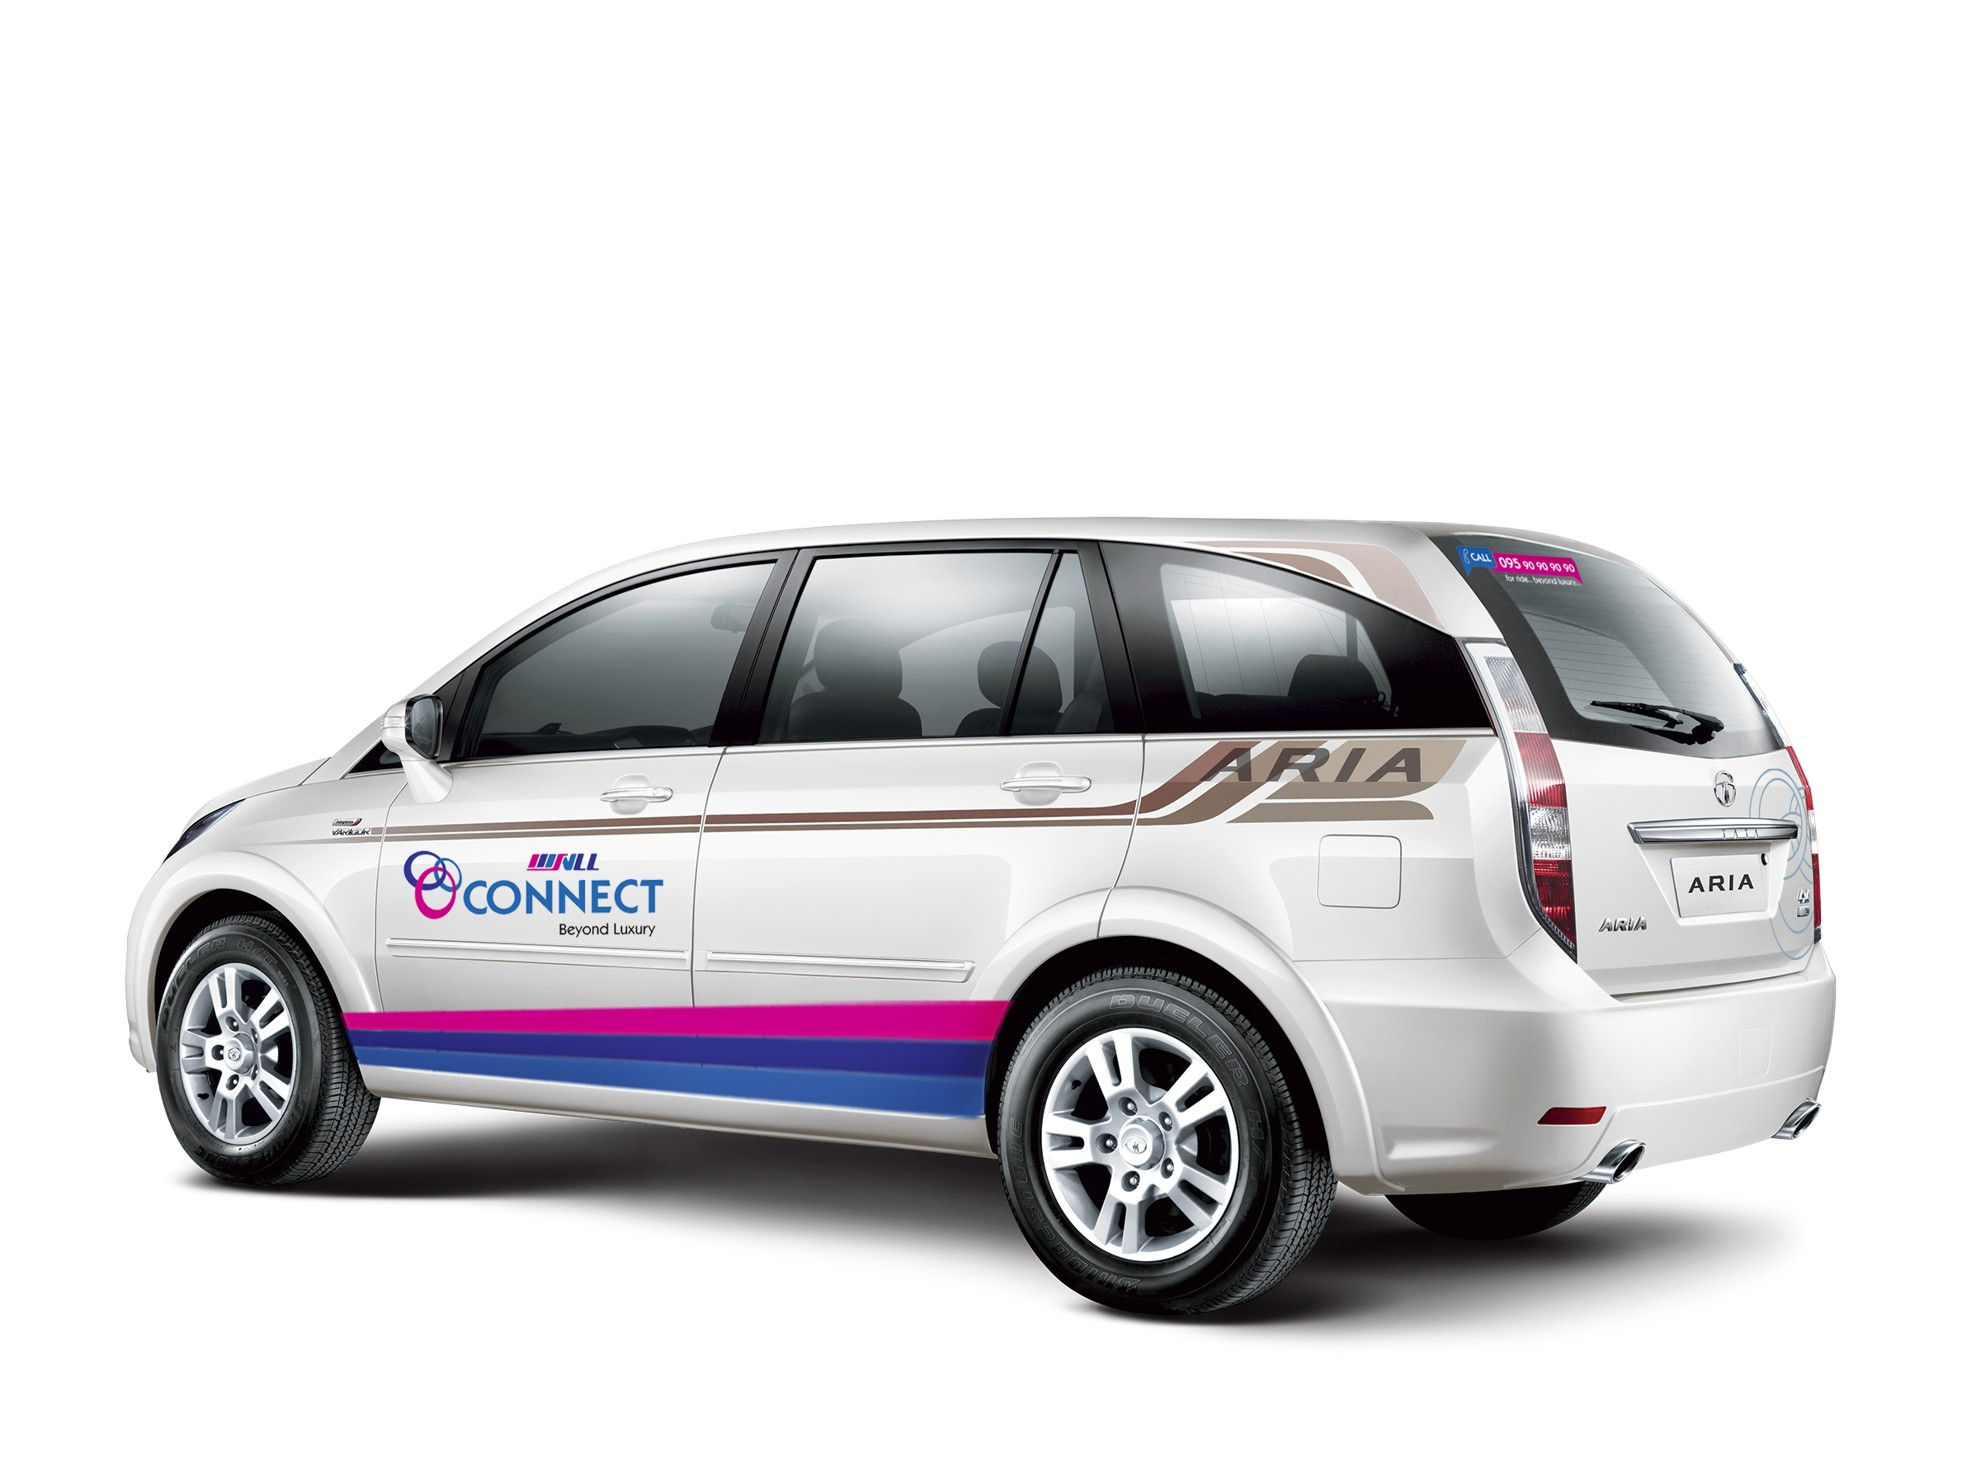 Tata Motors Svll Connect Places A Record Order Of 2000 Cars